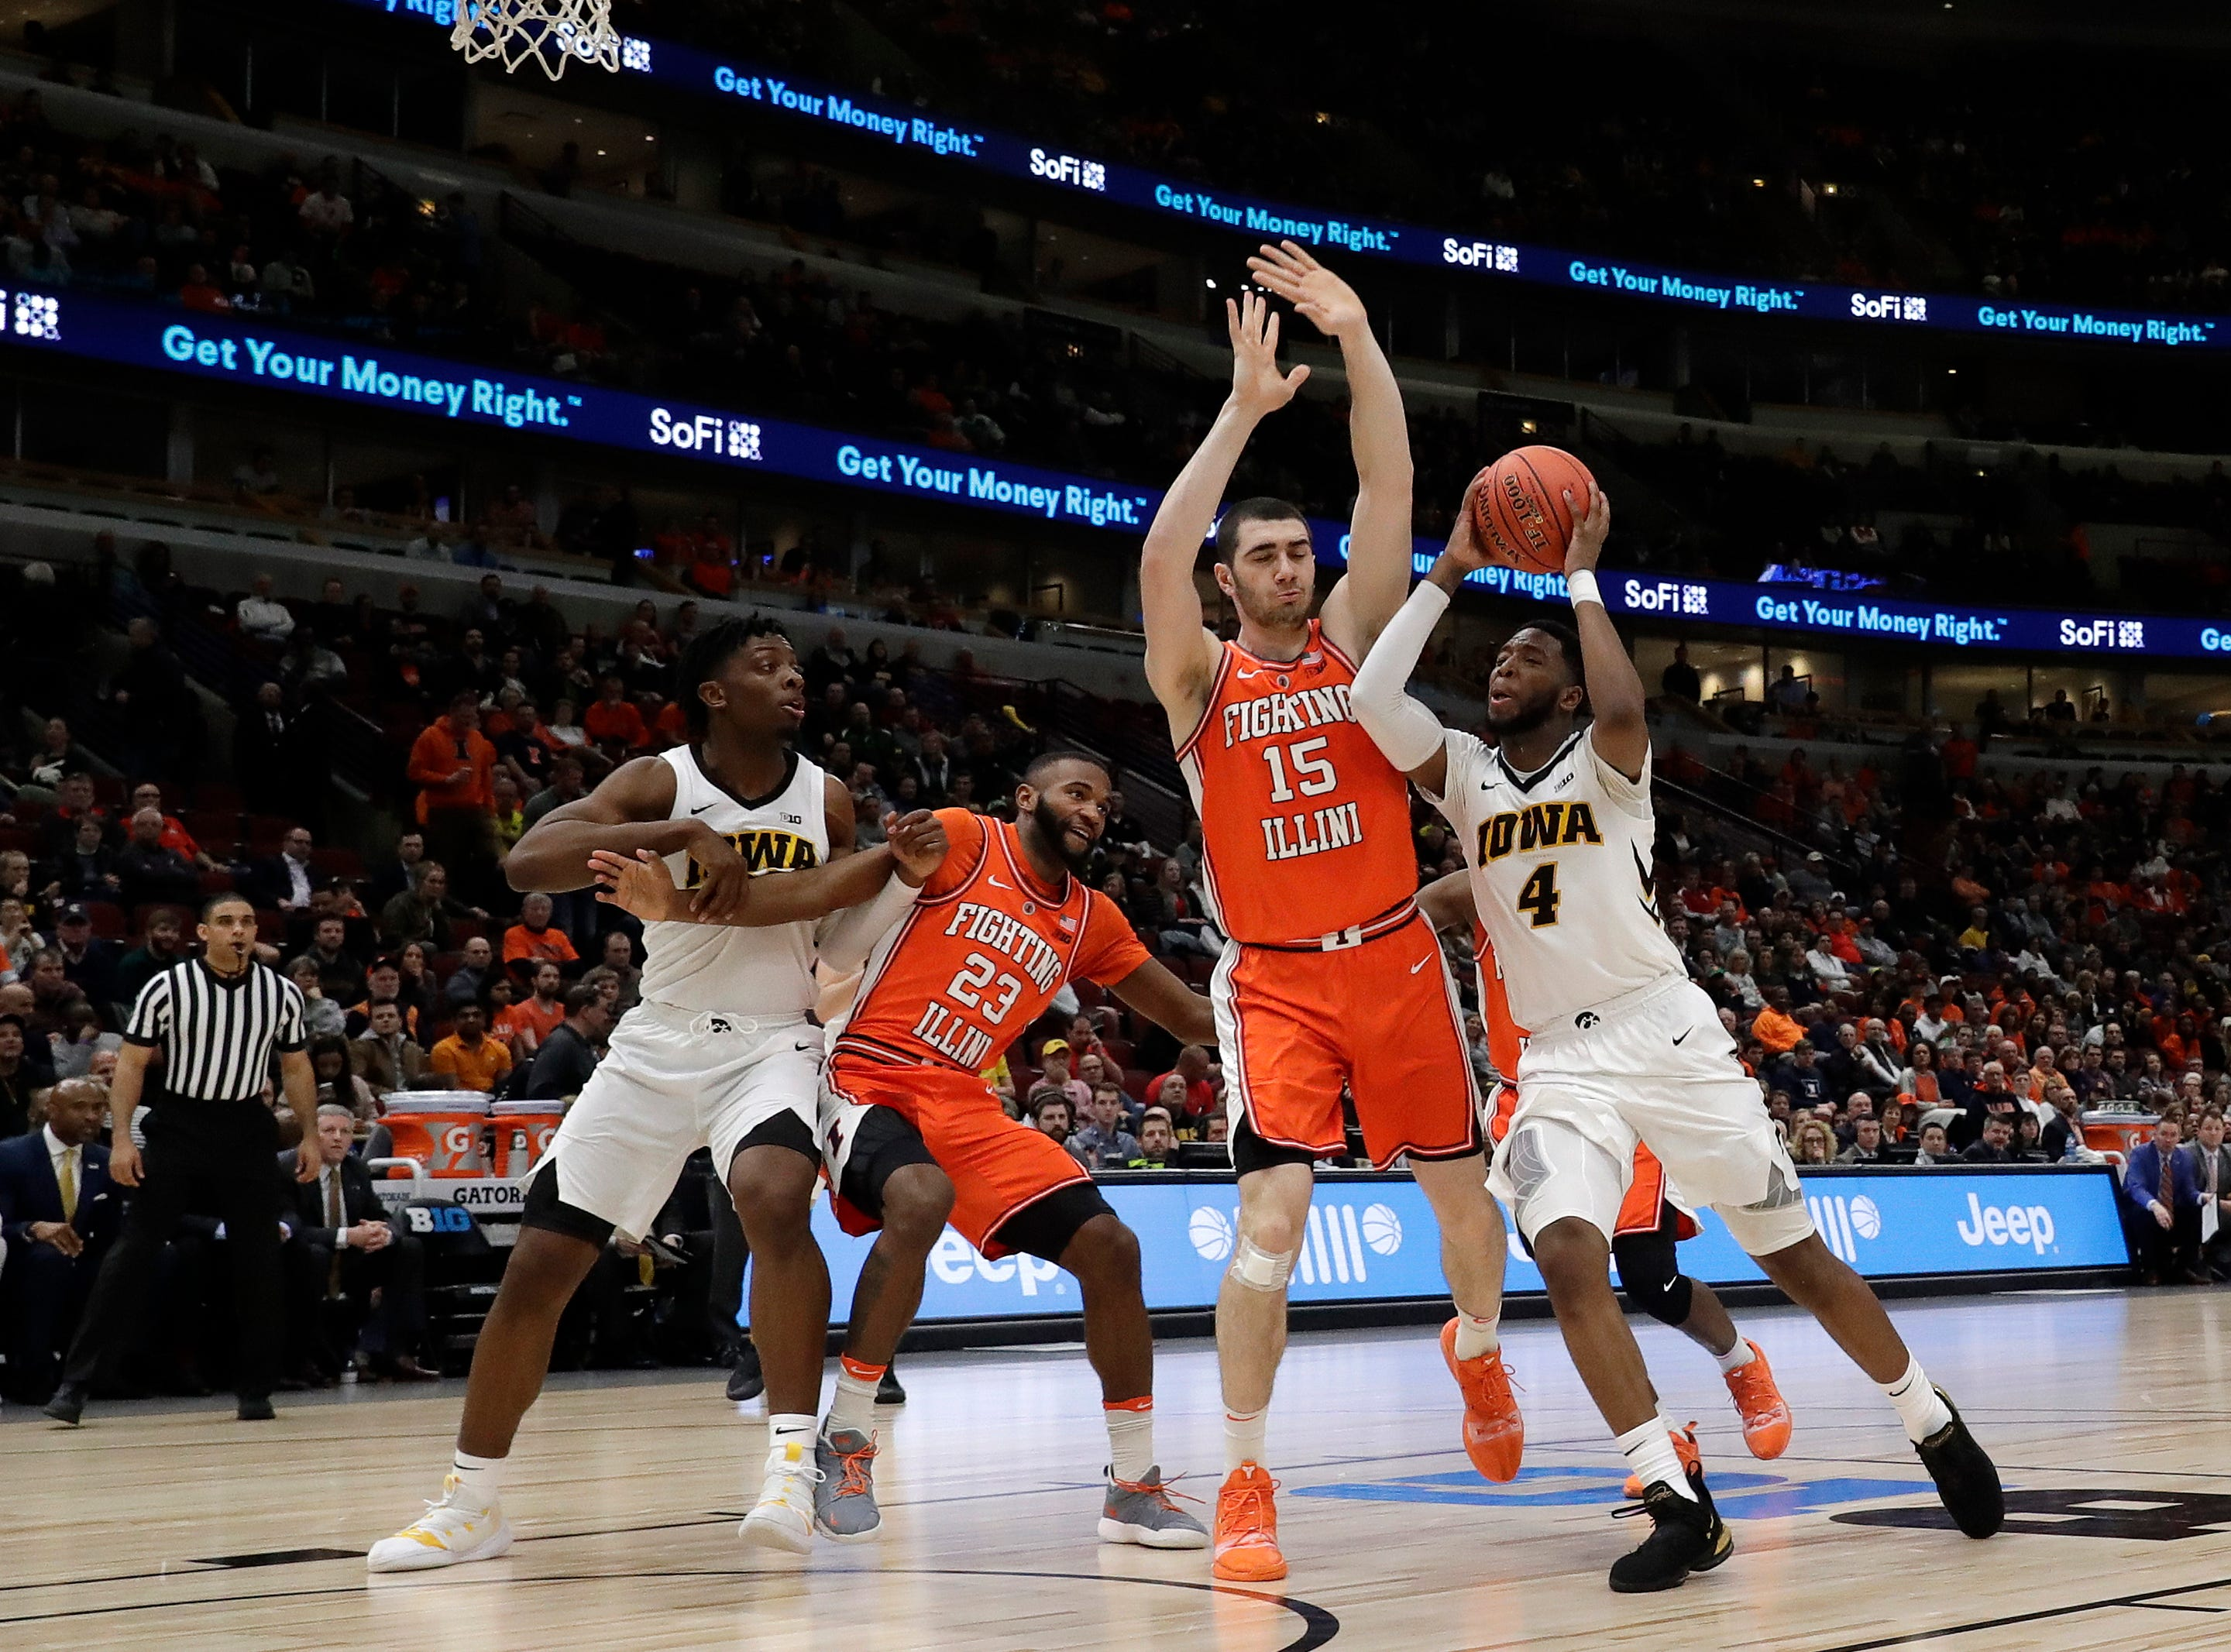 Iowa's Isaiah Moss (4) drives against Illinois's Giorgi Bezhanishvili (15) during the second half of an NCAA college basketball game in the second round of the Big Ten Conference tournament, Thursday, March 14, 2019, in Chicago.